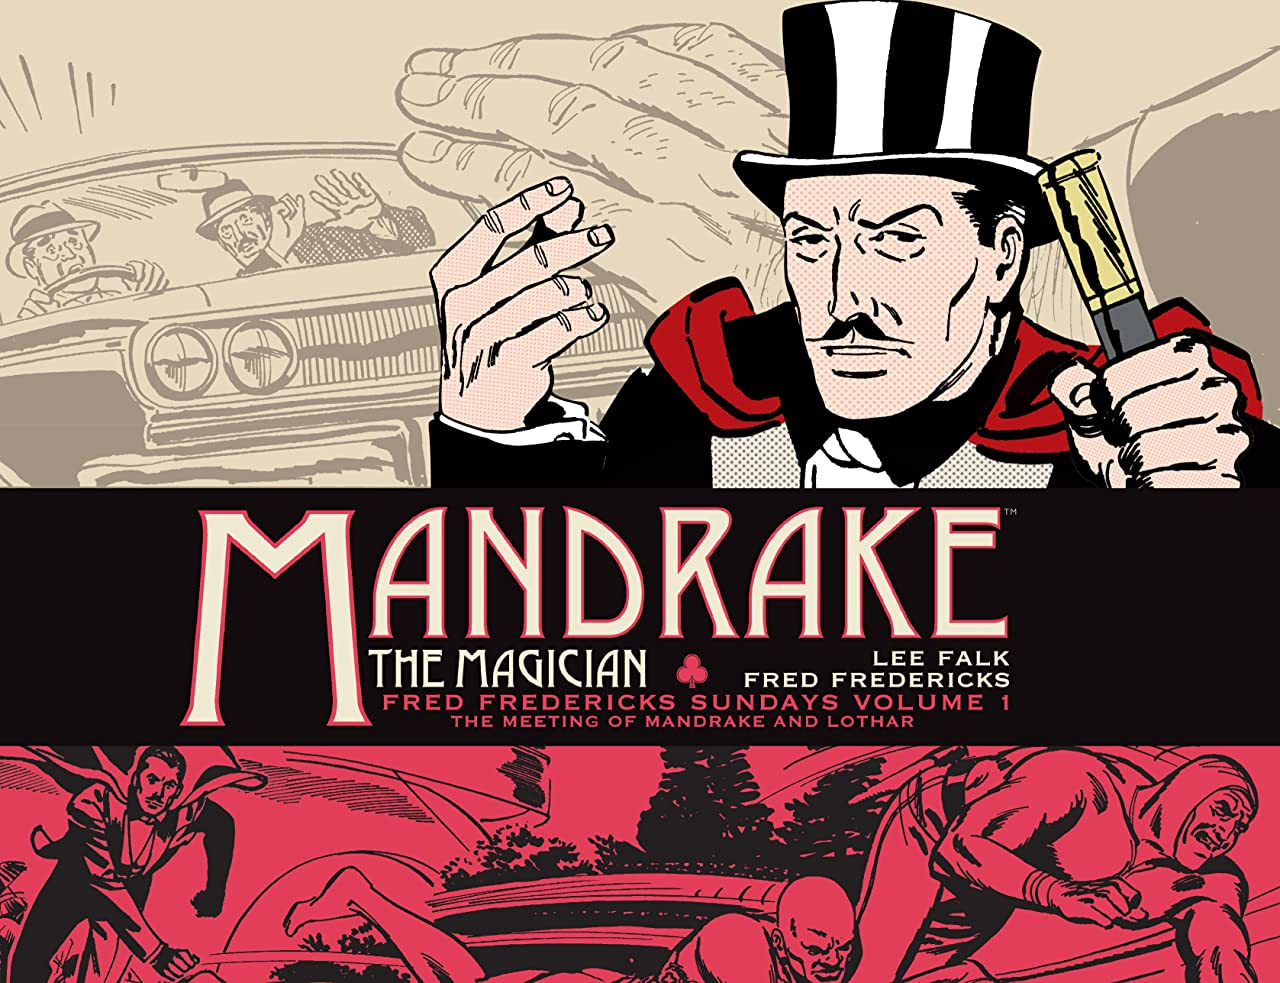 Mandrake The Magician: The Fred Fredricks Sundays Volume 1 - The Meeting of Mandrake and Lothar